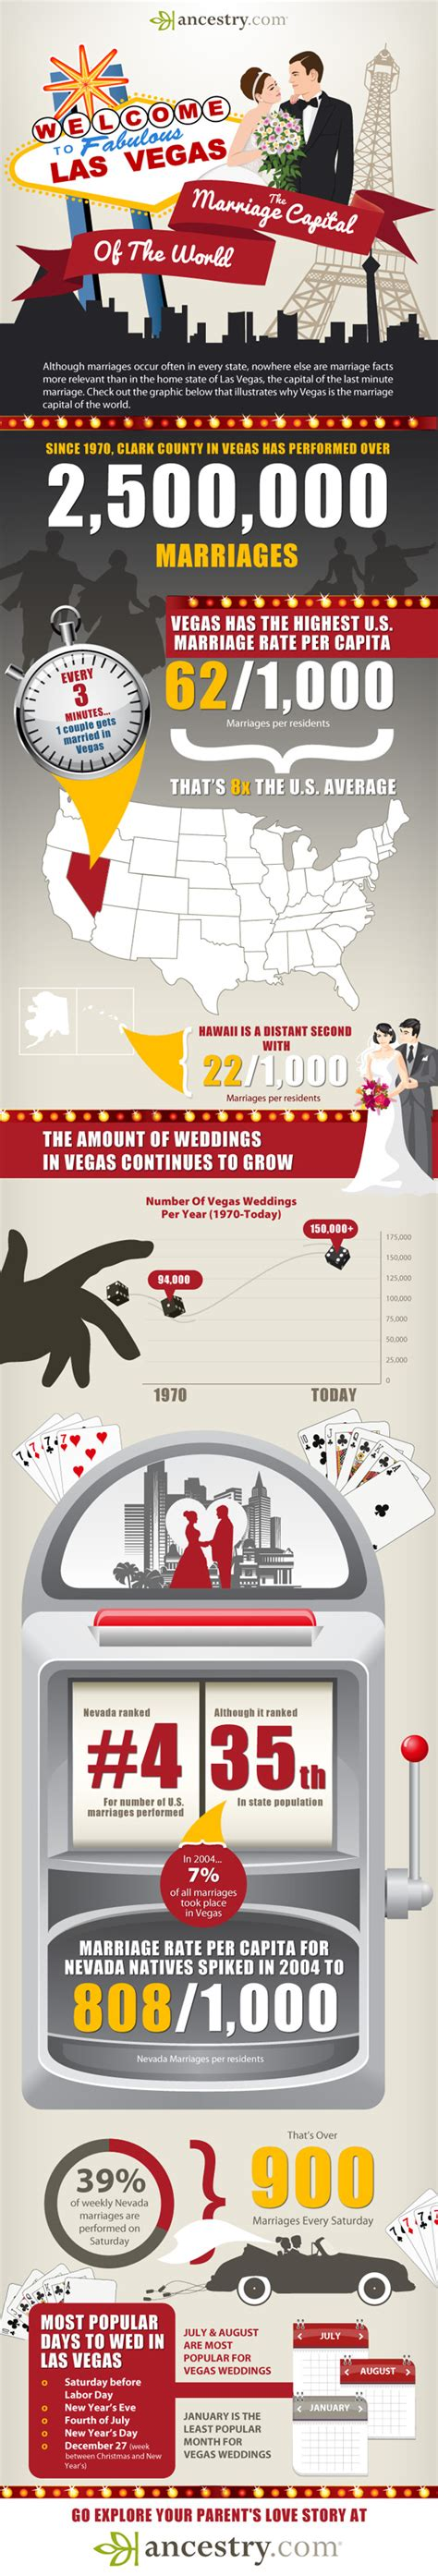 Las Vegas Vital Records Marriage Las Vegas The Marriage Capital Of The World Infographic Genealogyblog